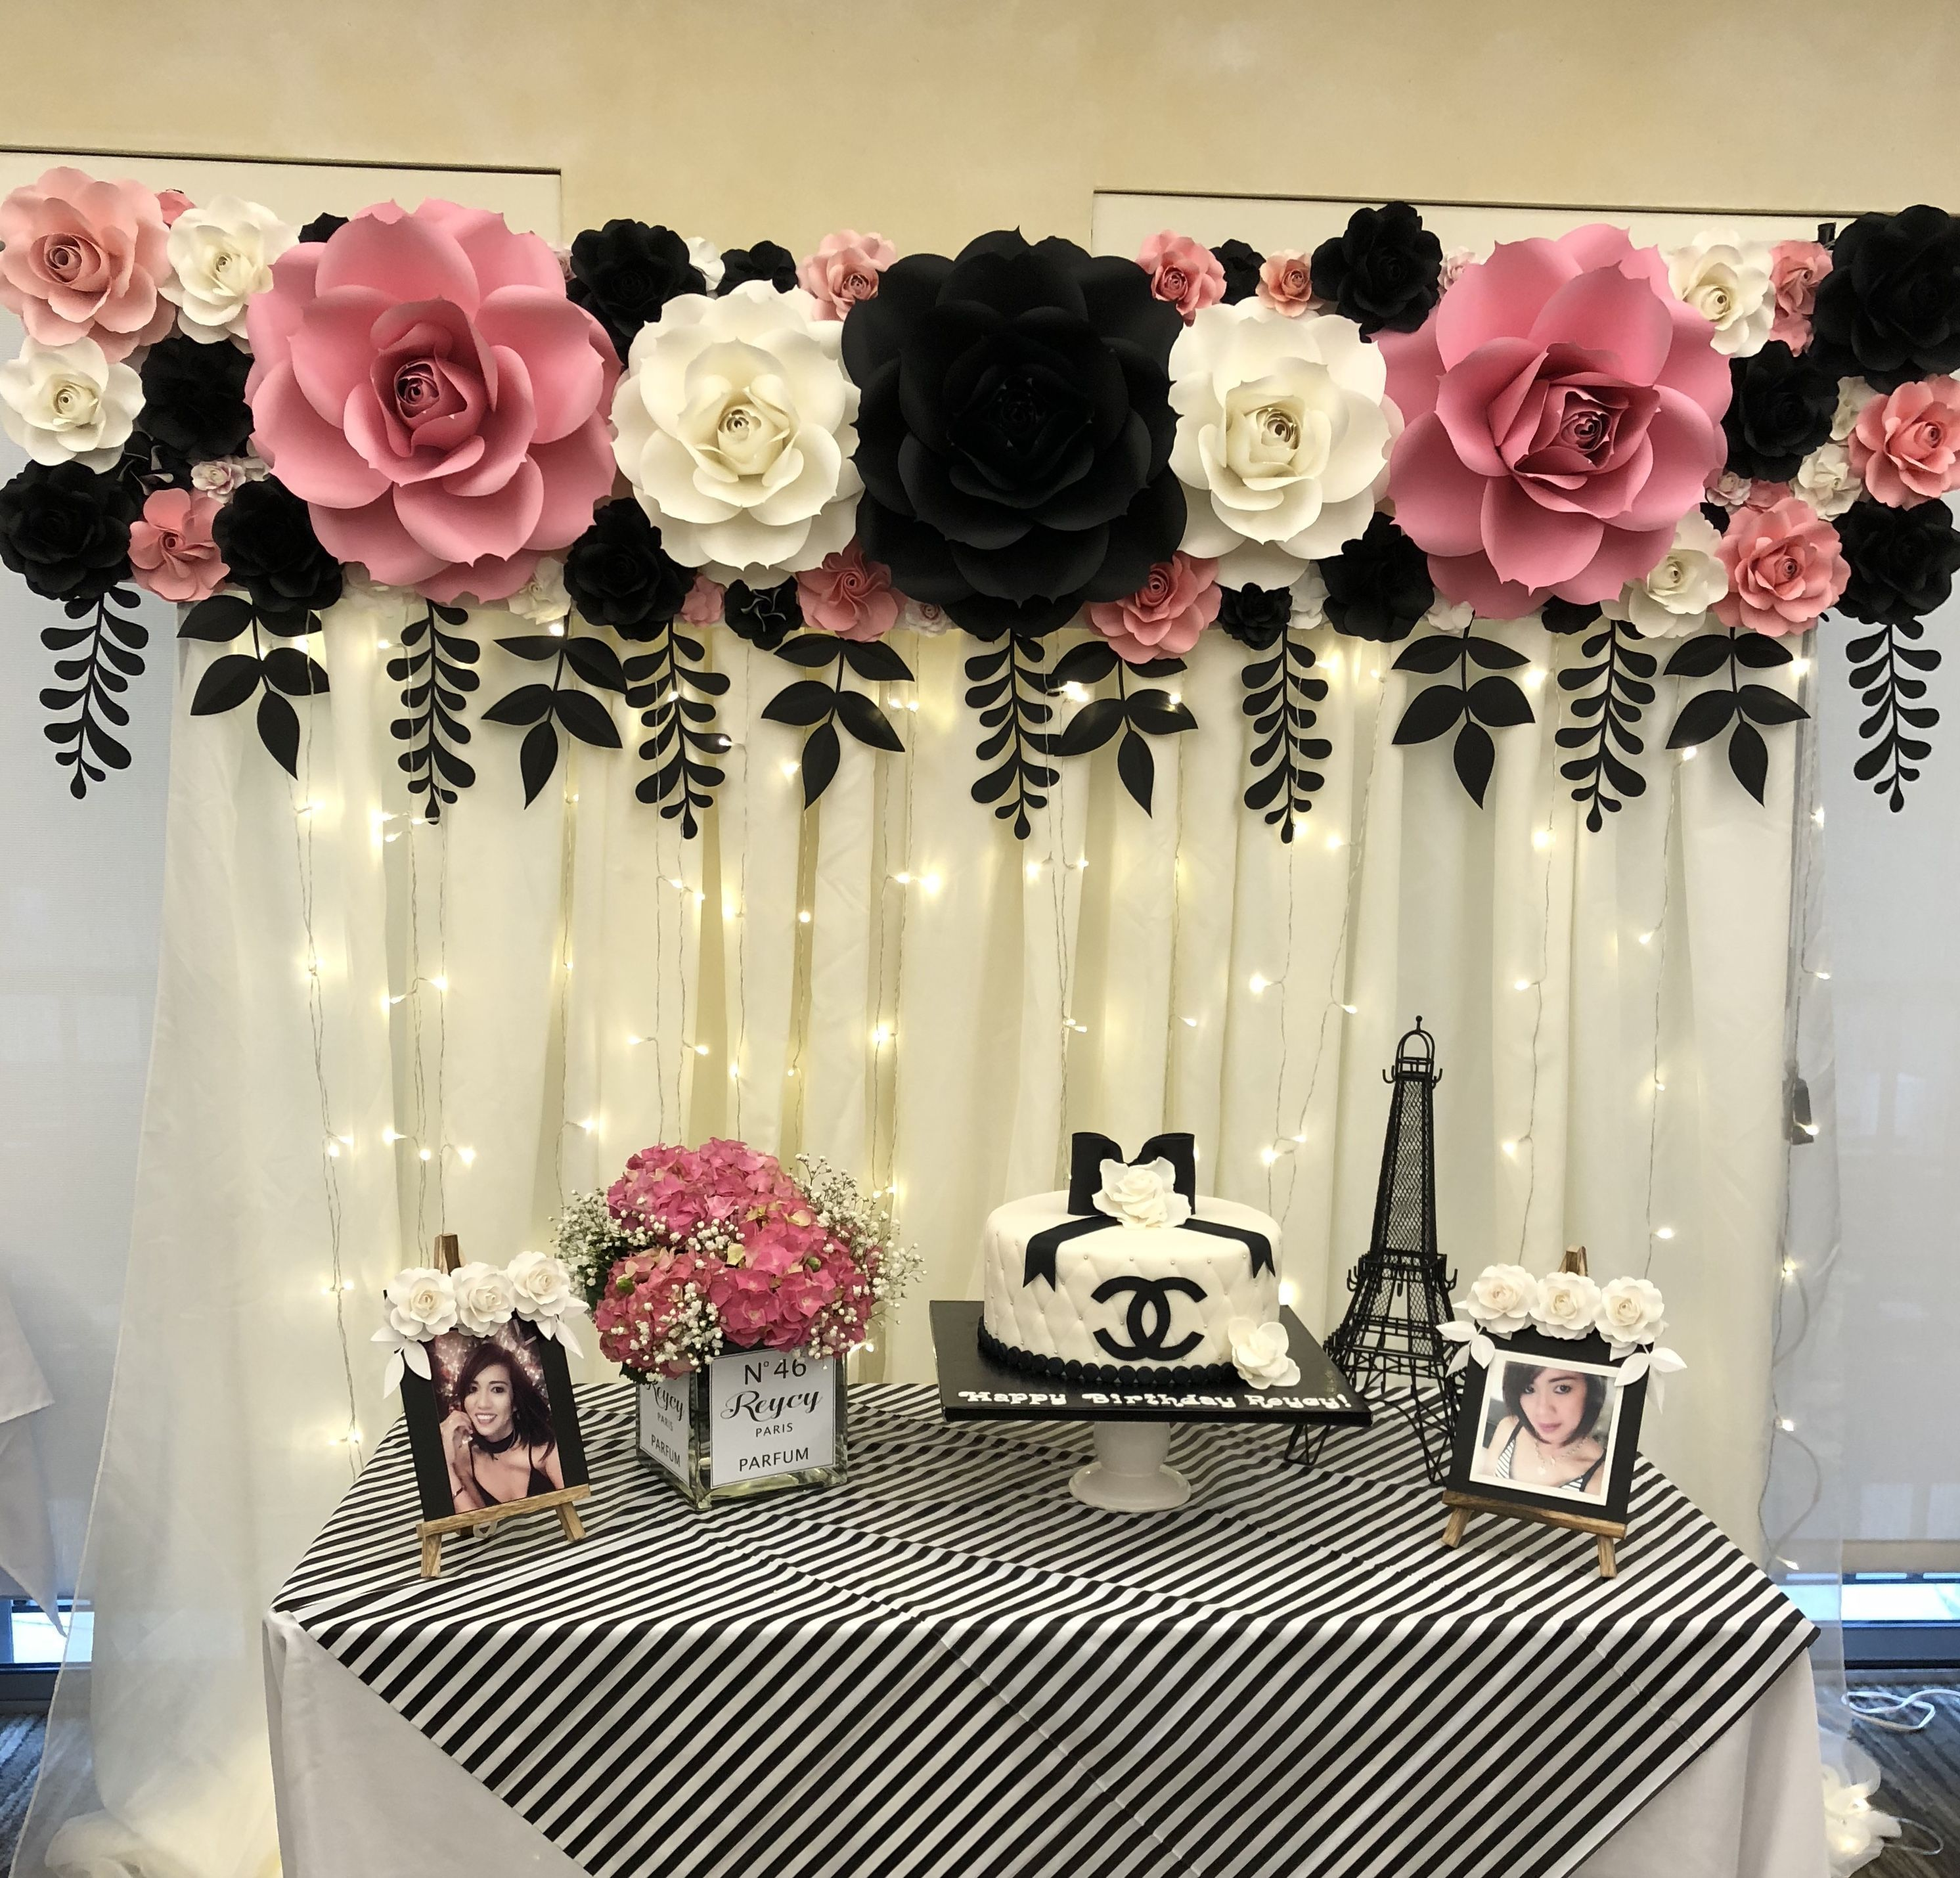 Paper Flower Backdrop Chanel Inspired Wedding Party Table Birthday Party Decorations Birthday Decorations